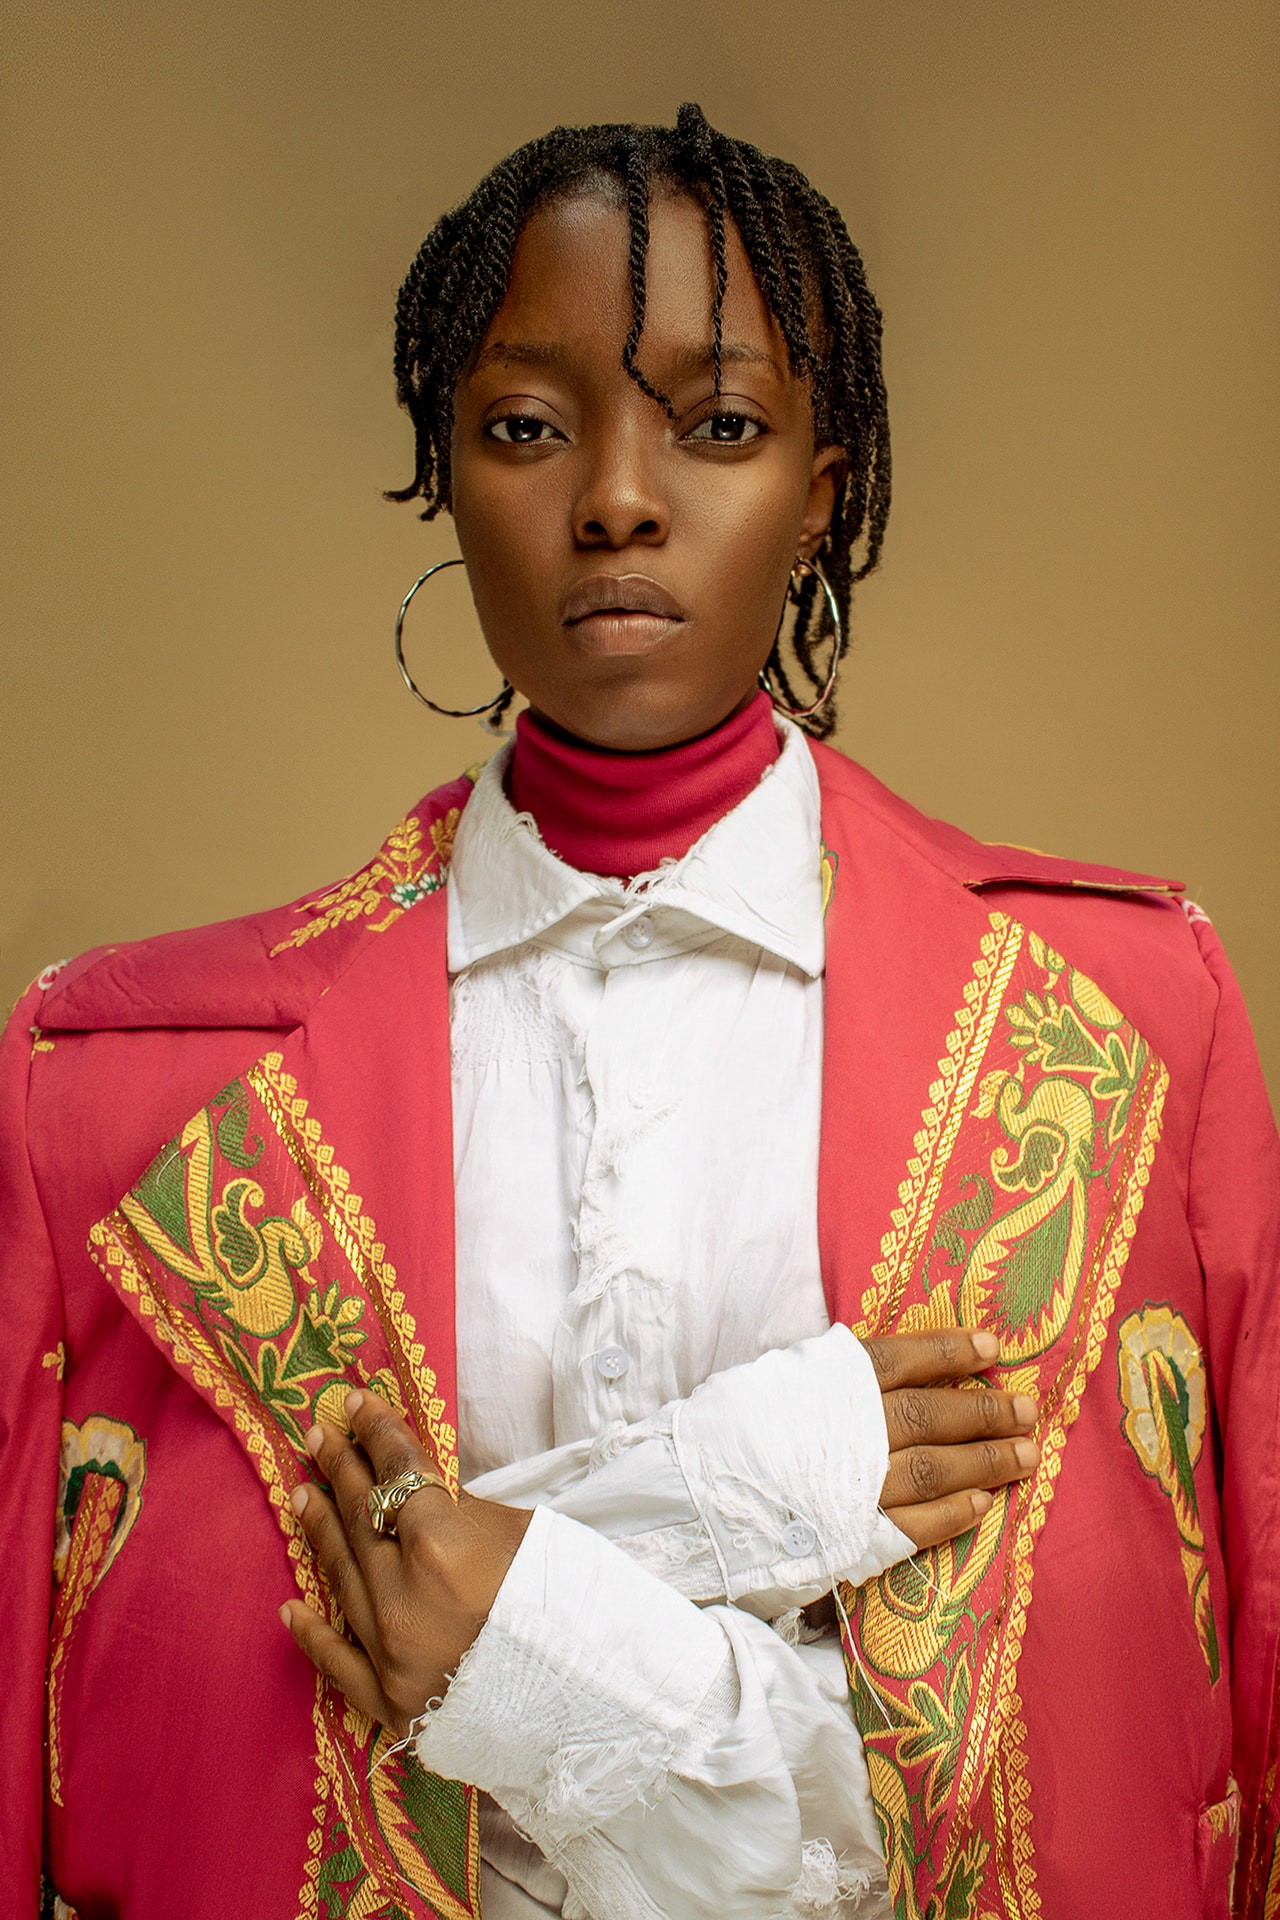 Young black woman in dreadlocks wearing a red uniform-looking clothing